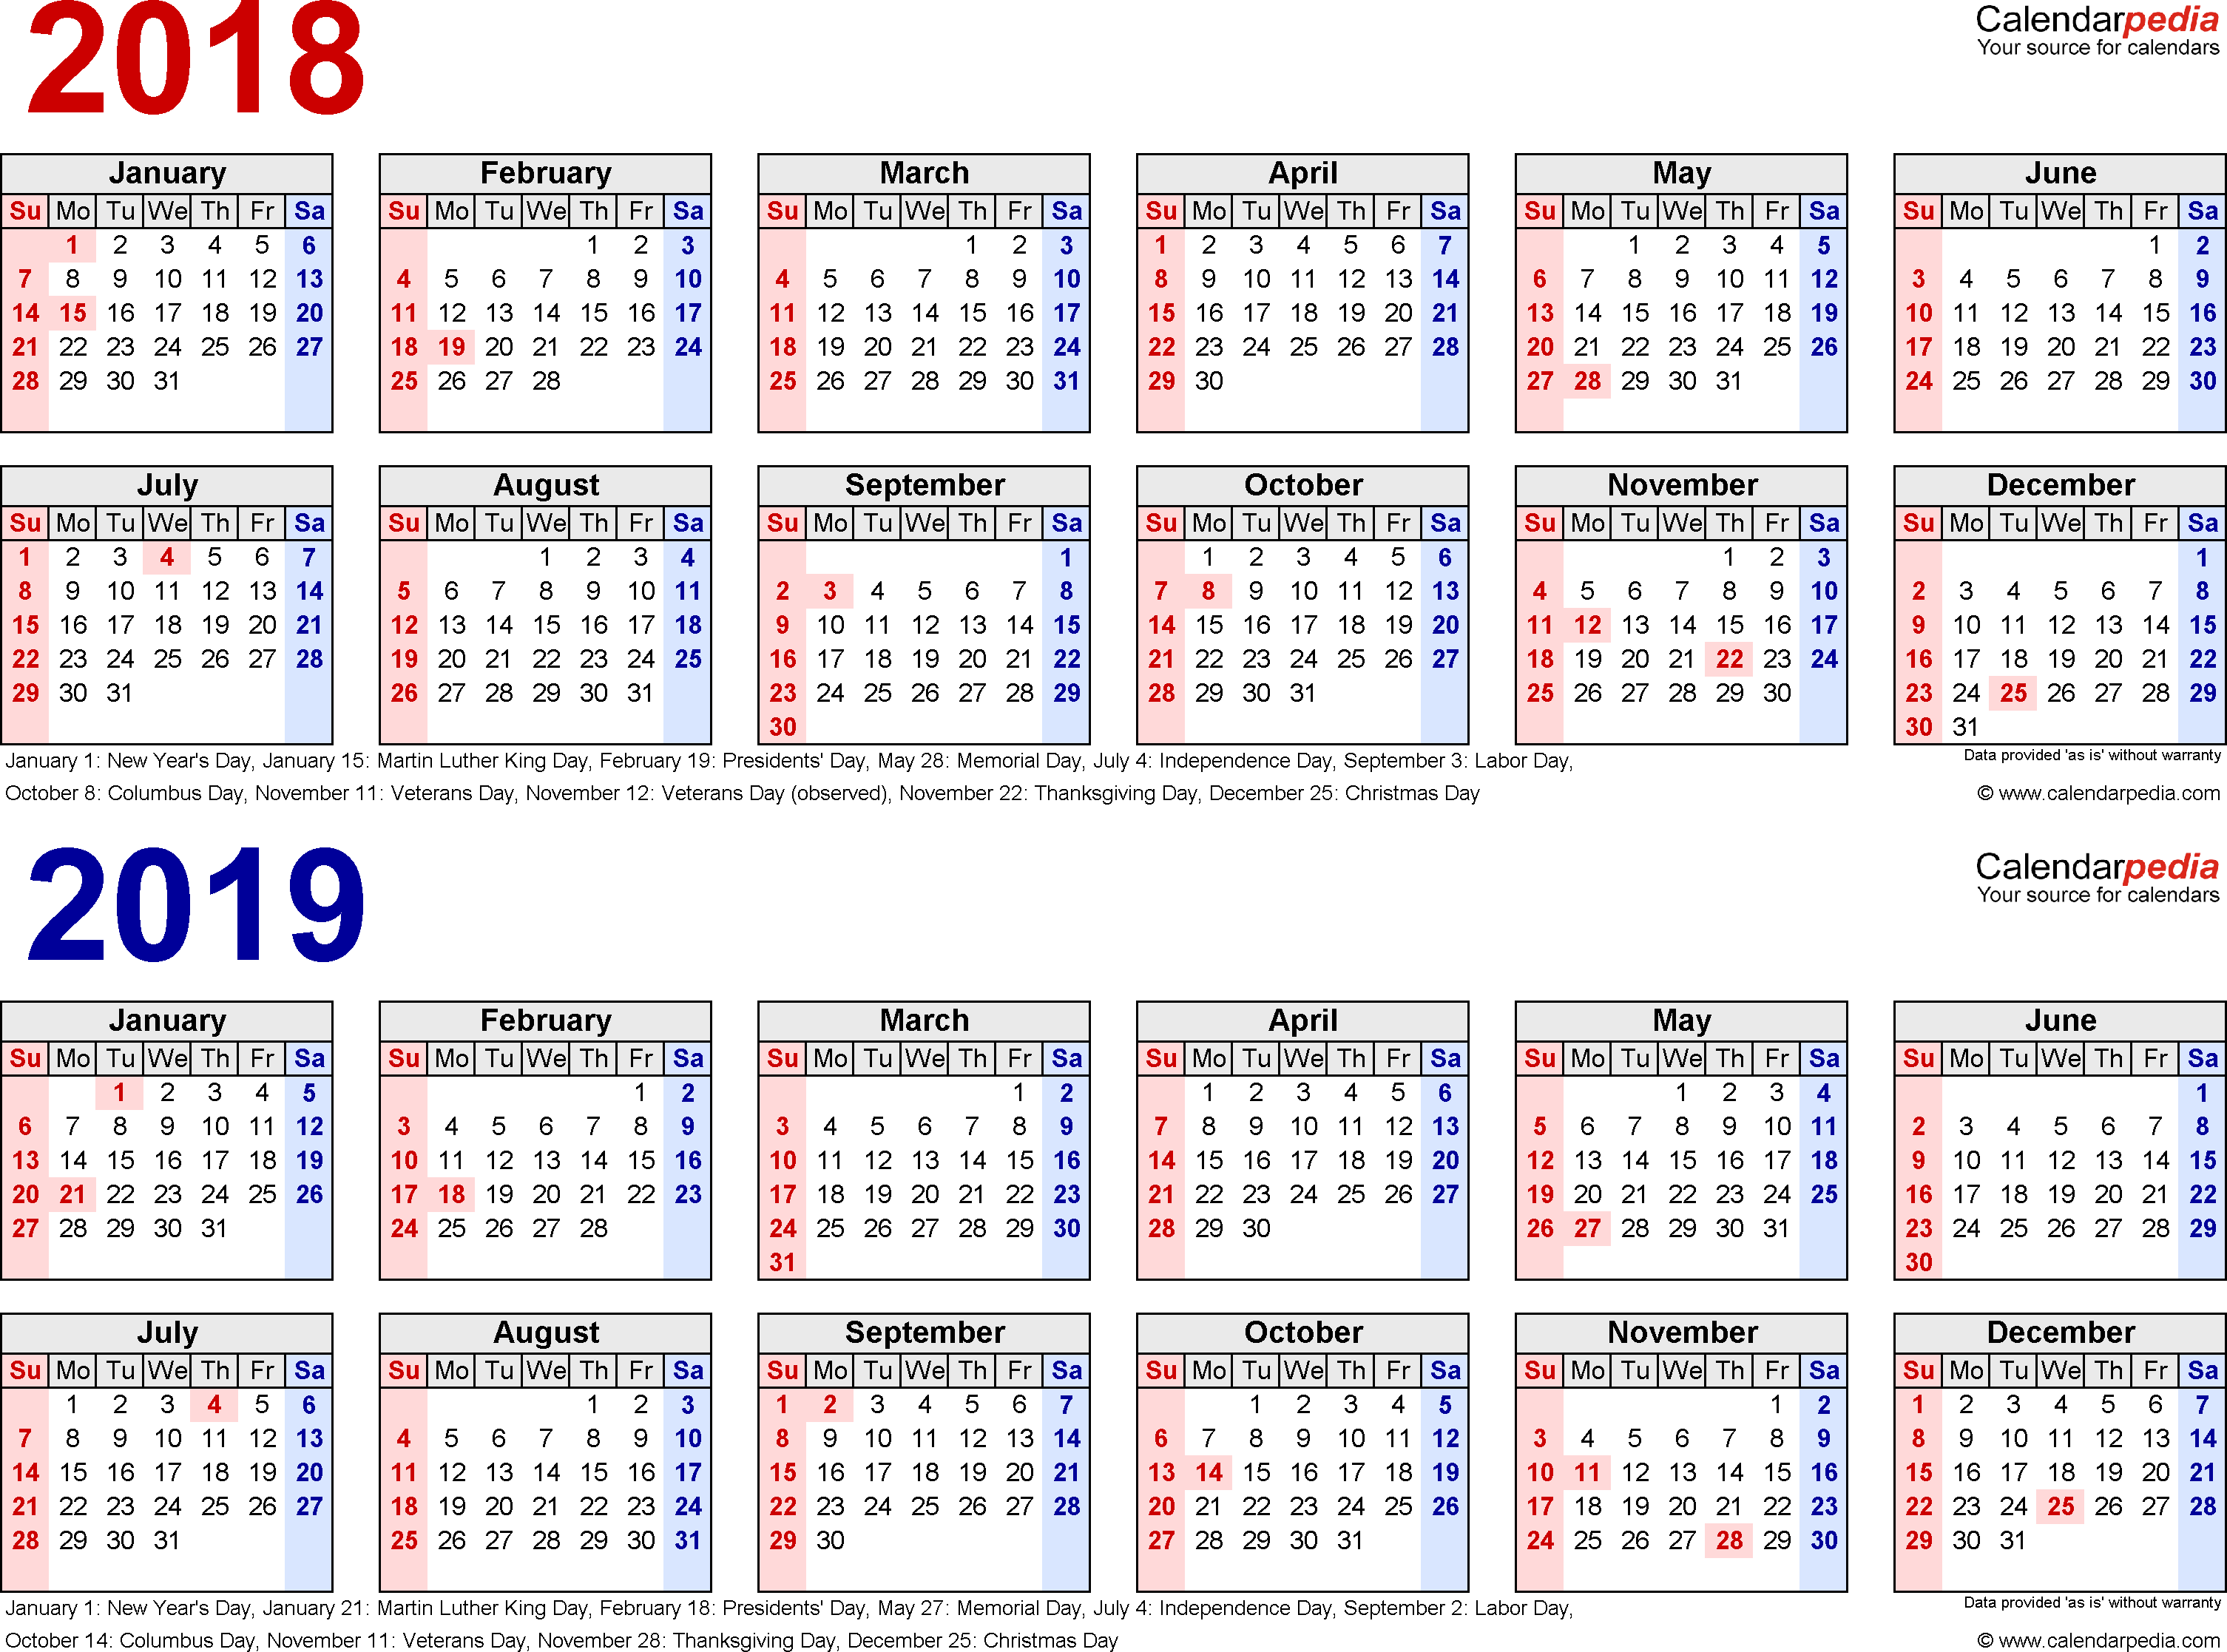 2018-2019 Calendar - free printable two-year PDF calendars